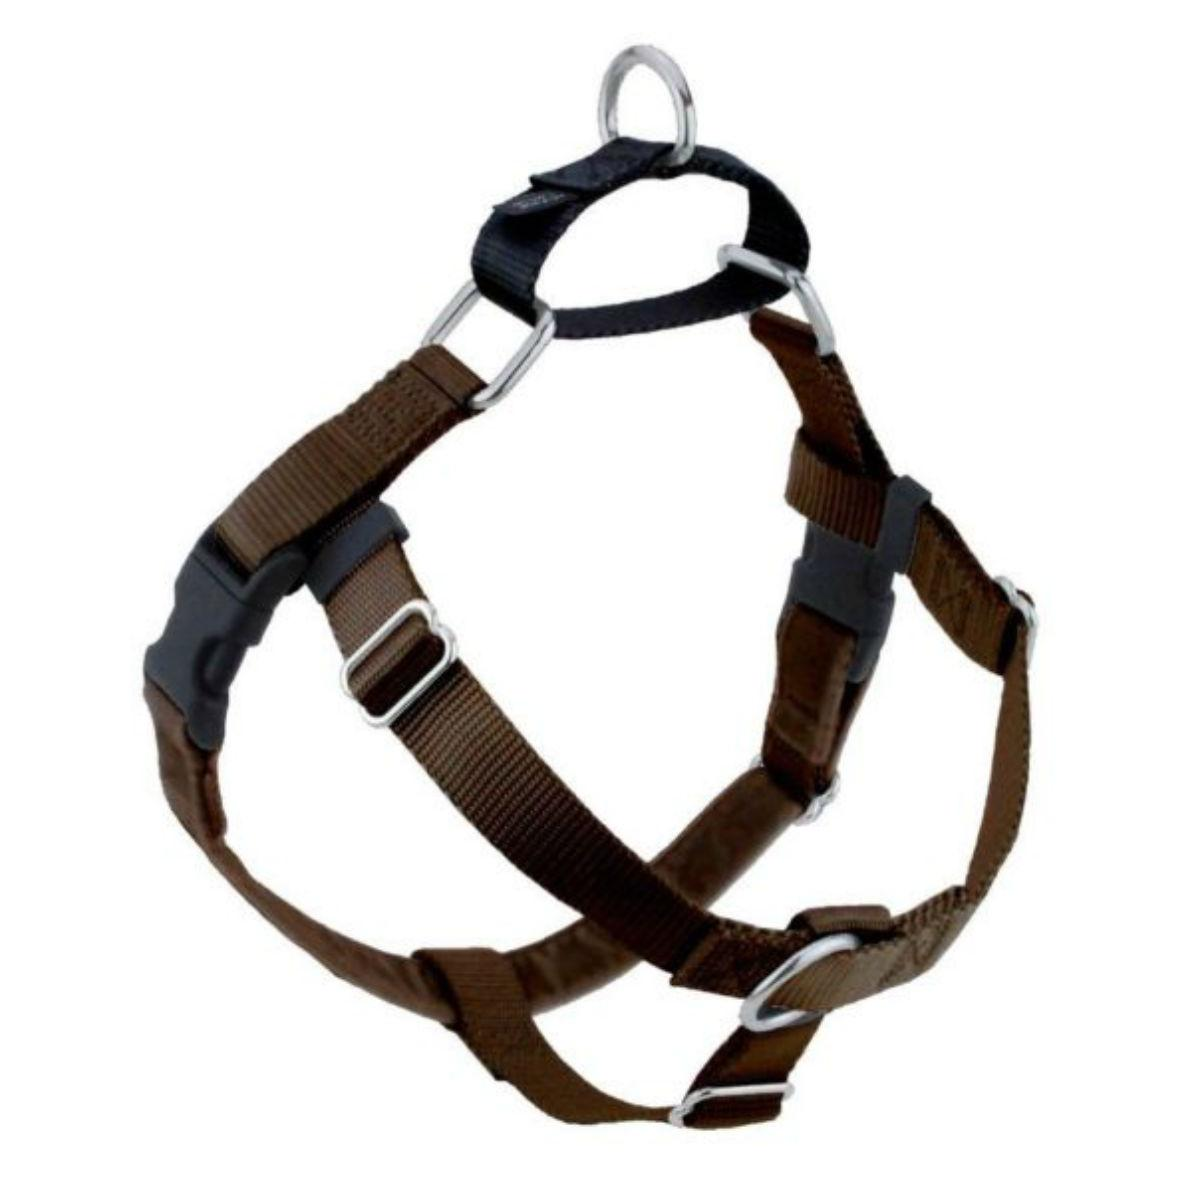 No-Pull Dog Harness Deluxe Training Package - Brown and Black